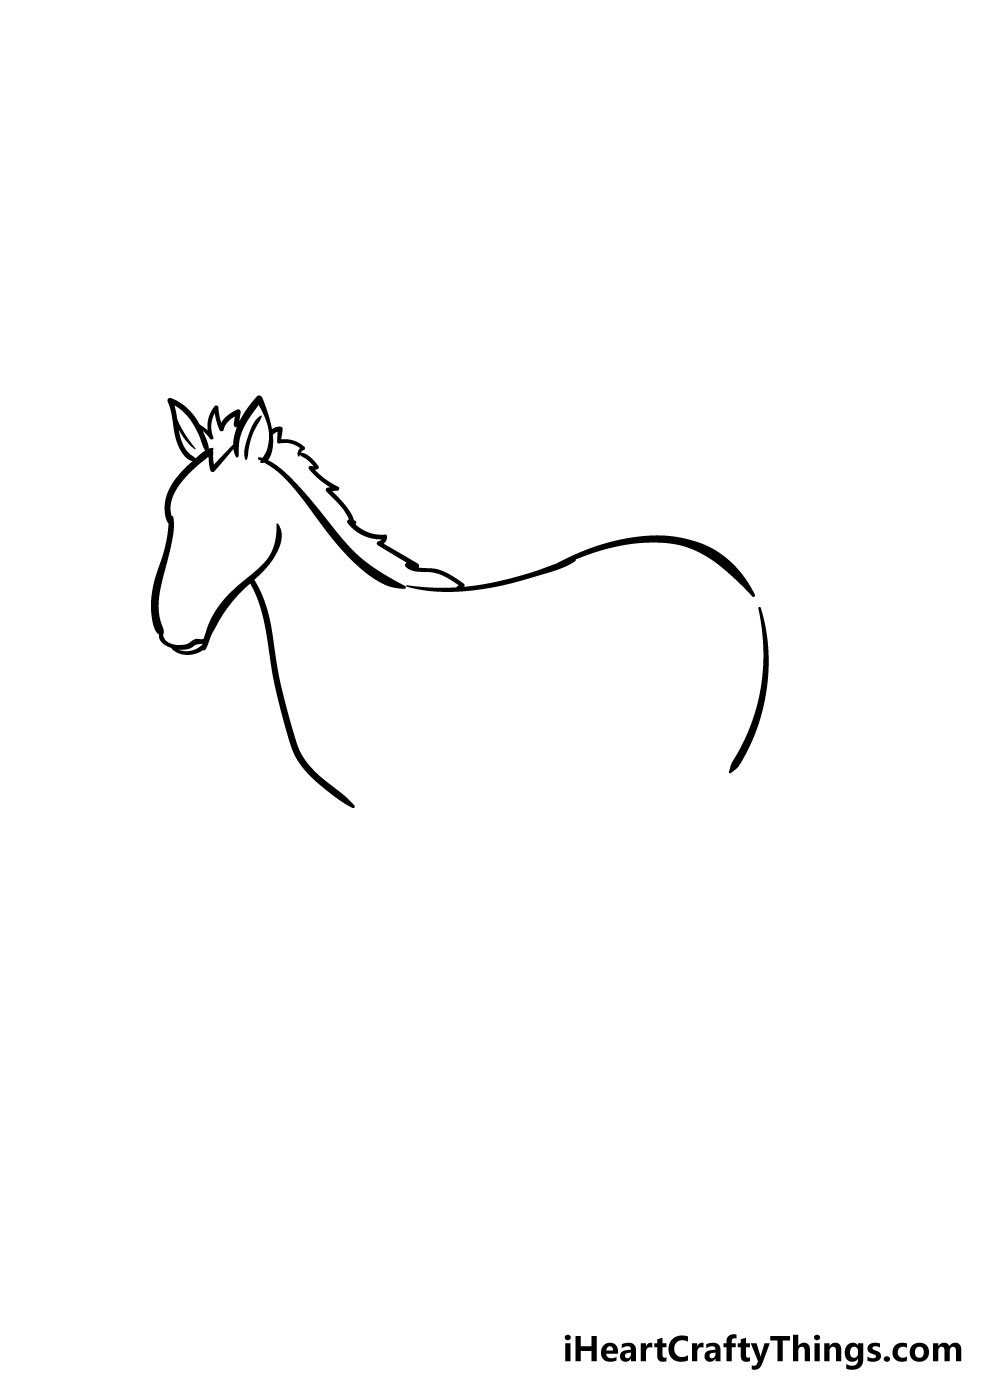 horse drawing step 4